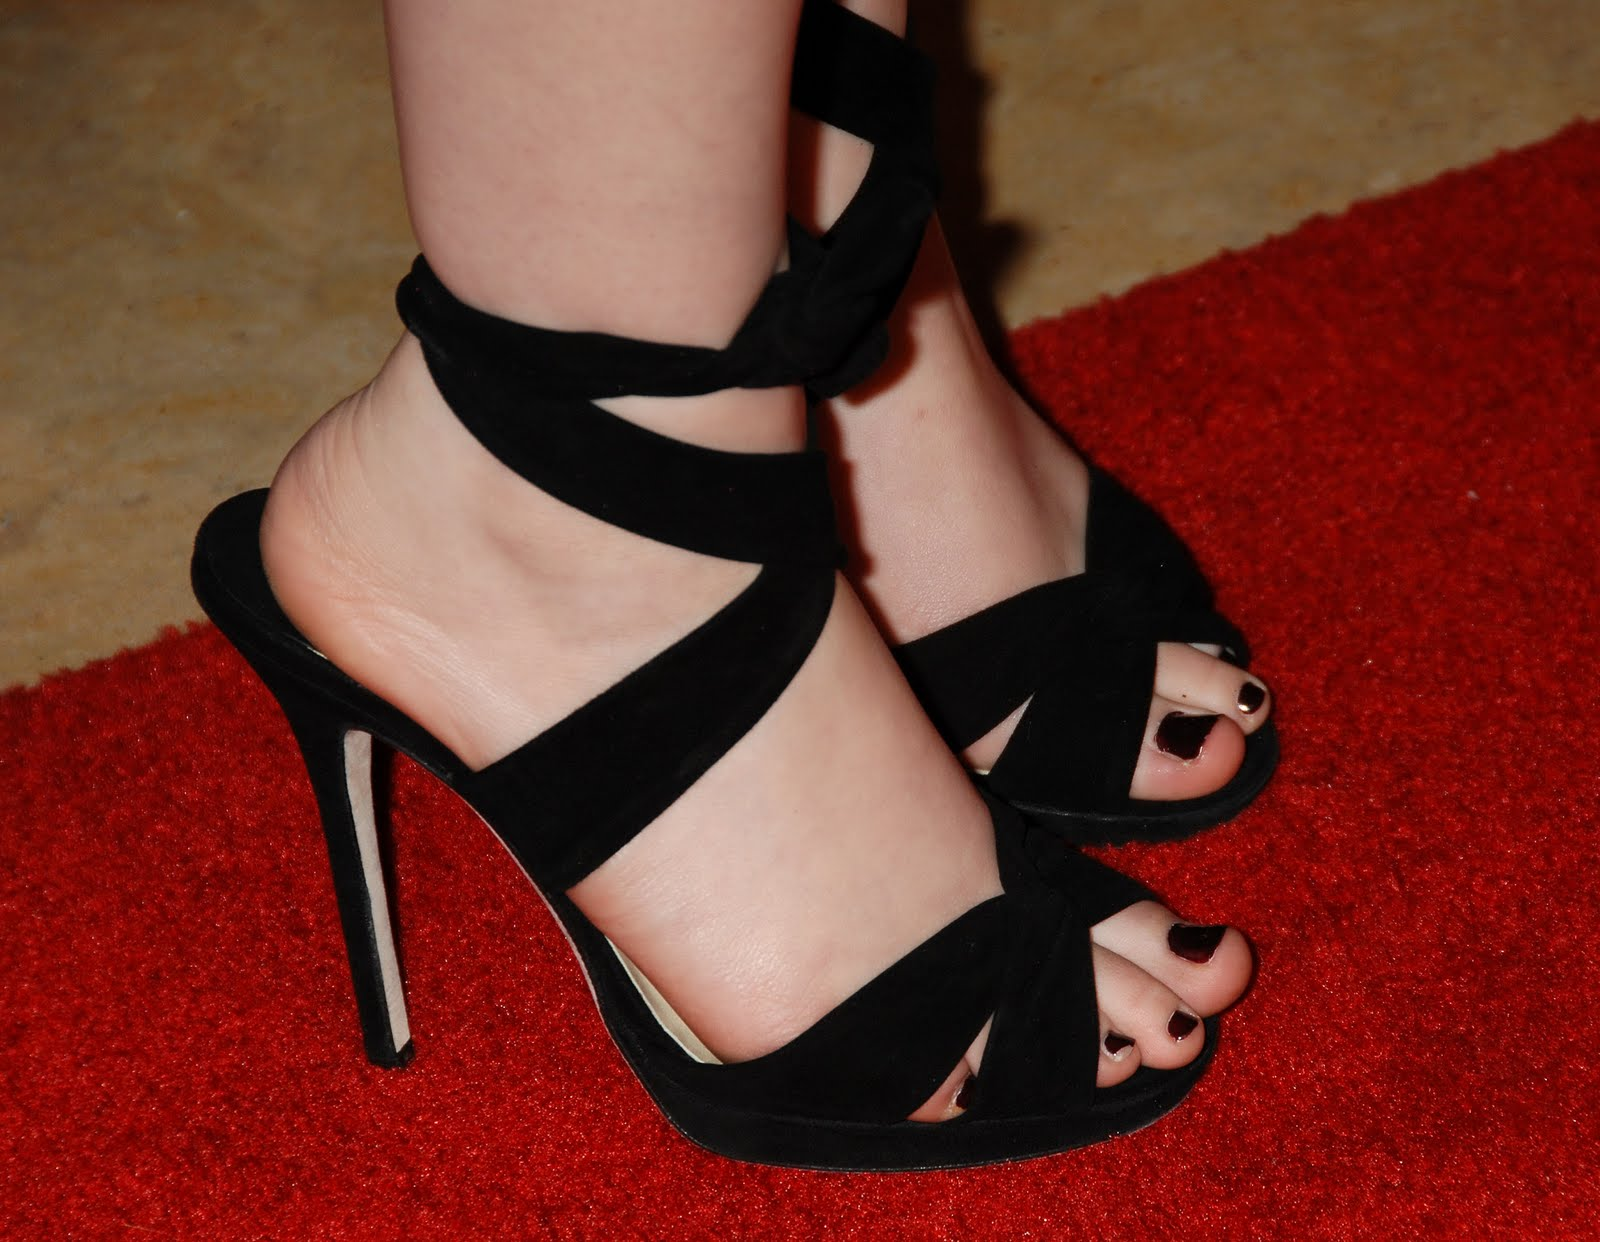 Kat Dennings Feet http://www.hollywoodfeet.com/2010/05/kat-dennings-feet.html